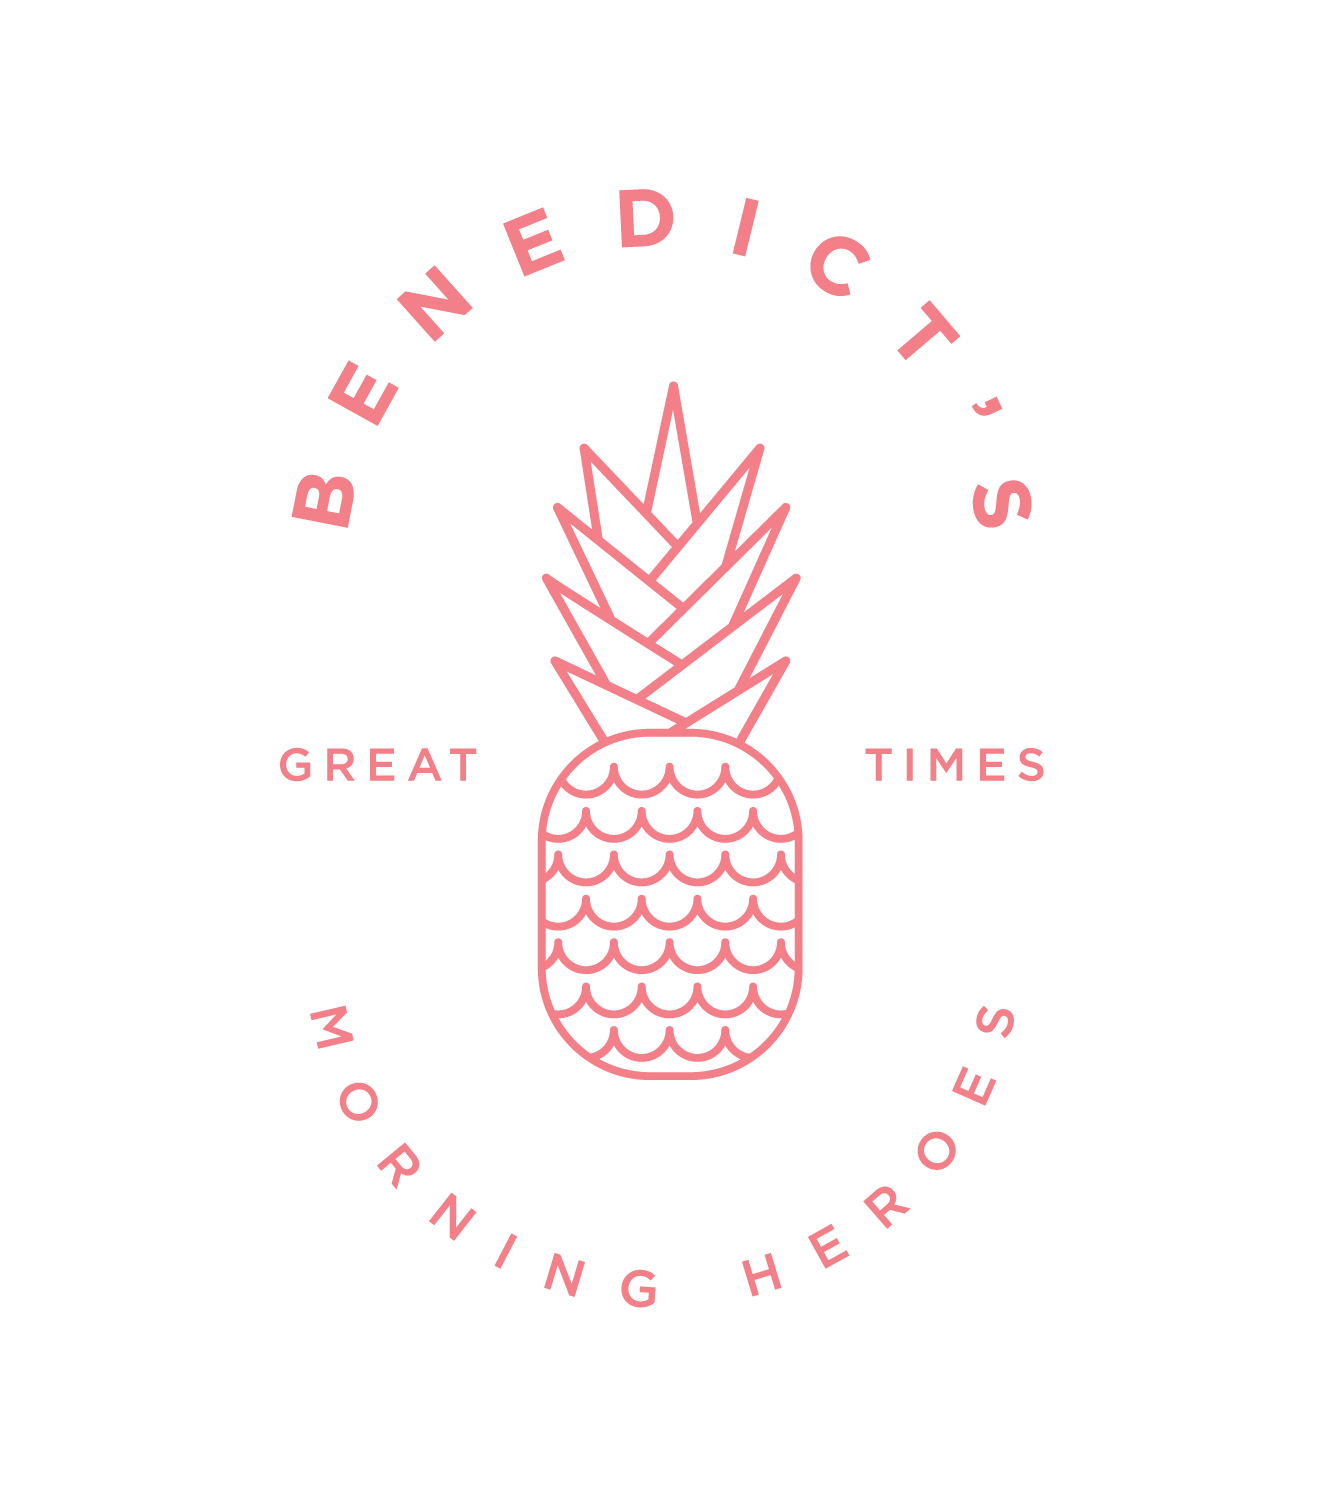 Benedicts_LogoCrest_WhiteBKGD_Pink-01